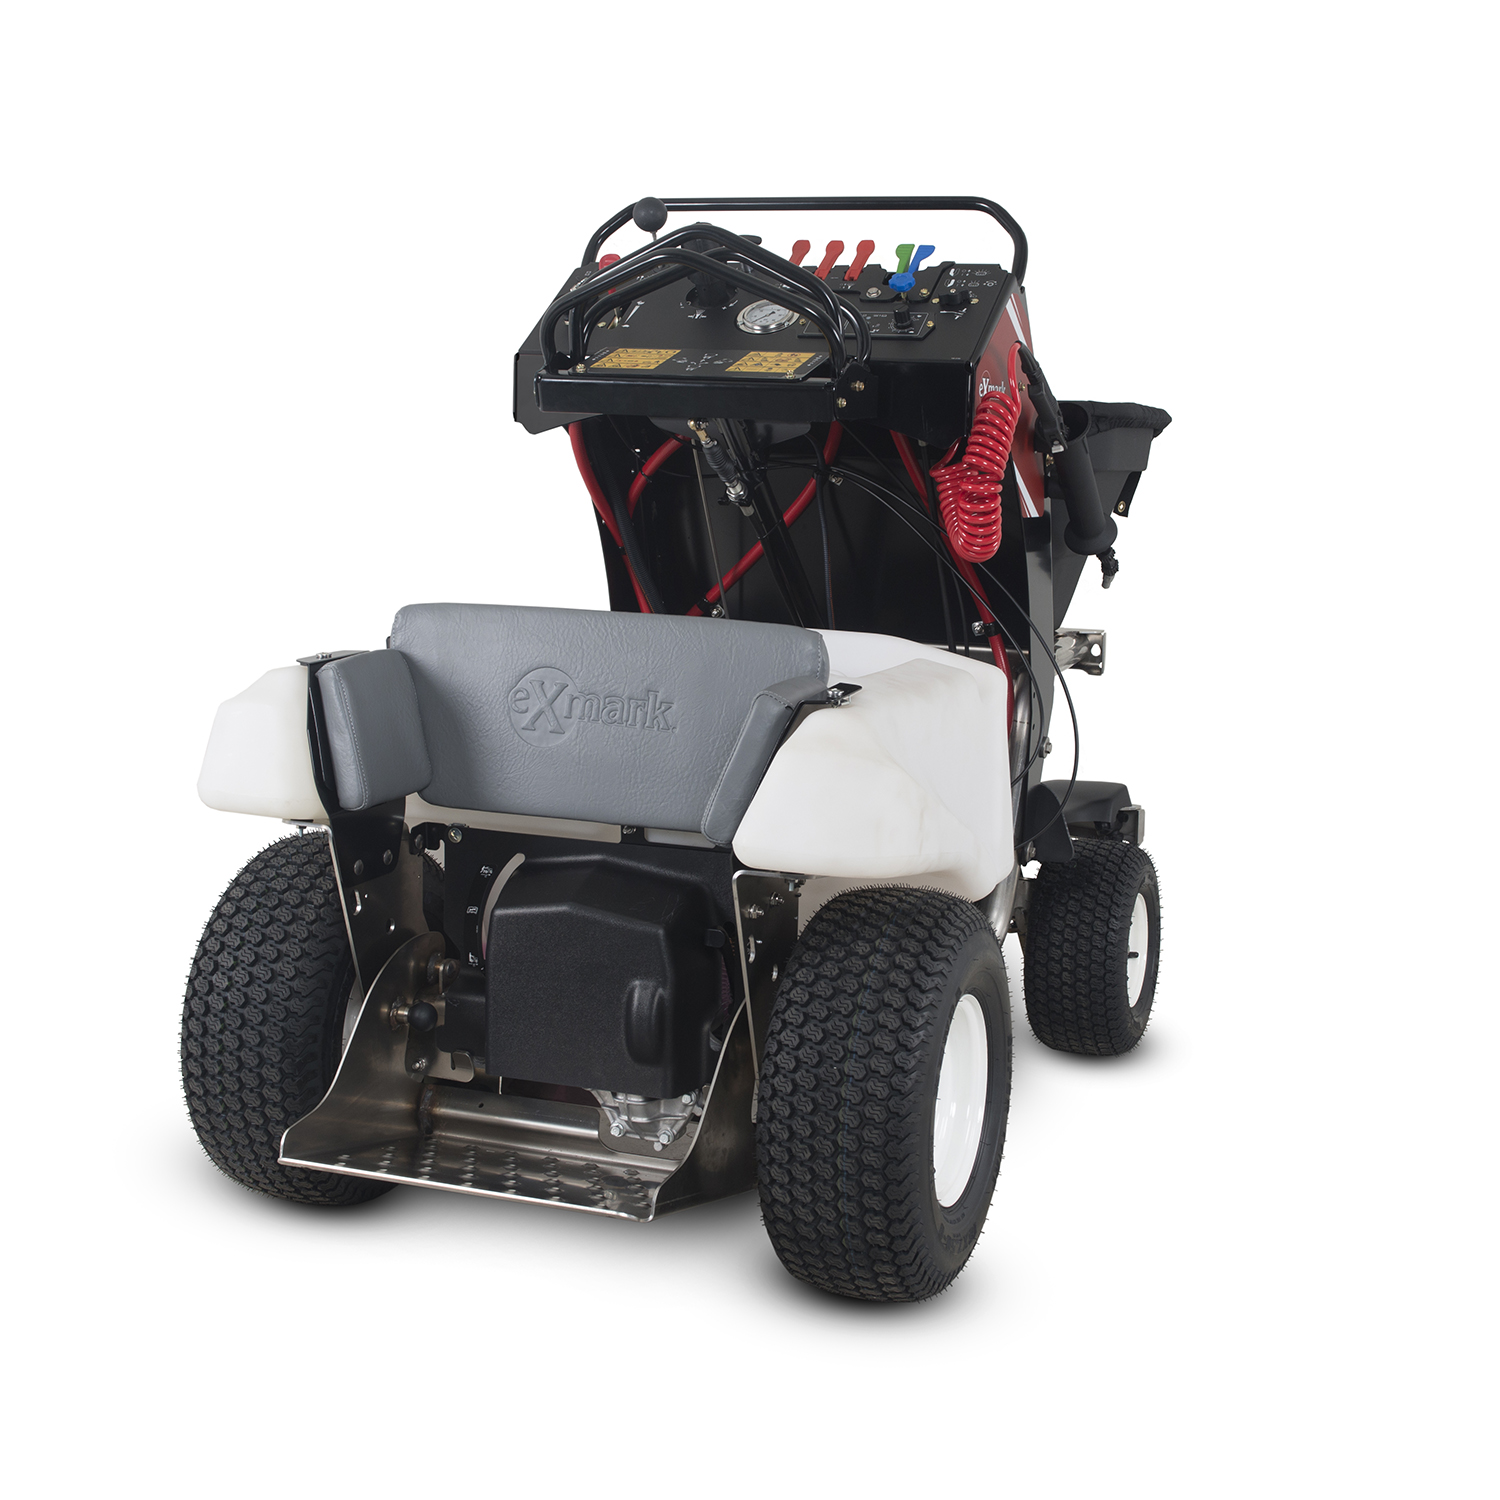 The Exmark Spreader Sprayer features exclusive Lean-To-Steer control system, which allows one-handed direction and speed control, leaving the other hand free to perform spot treatments, or adjust sprayer or spreader controls on-the-fly.